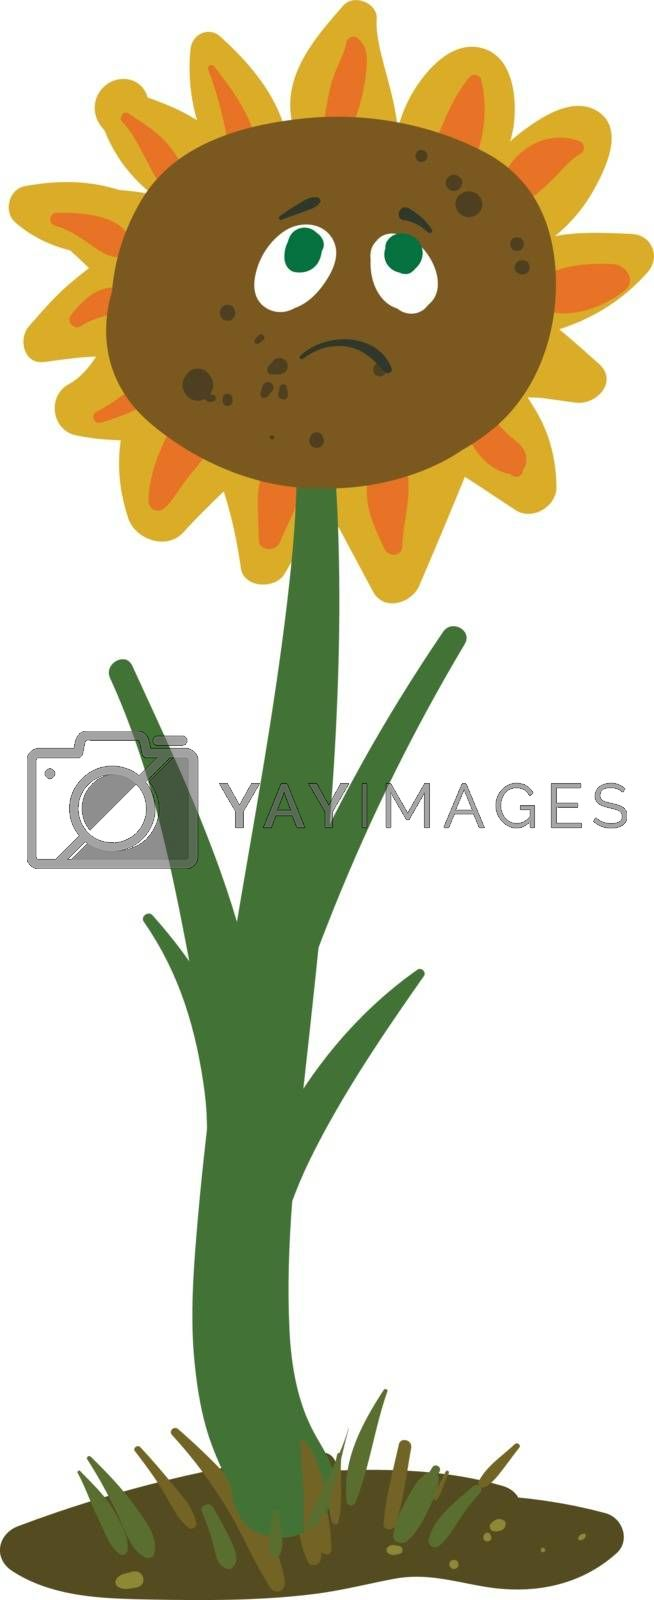 Royalty free image of Emoji of a sad grey-colored sunflower bud vector or color illust by Morphart